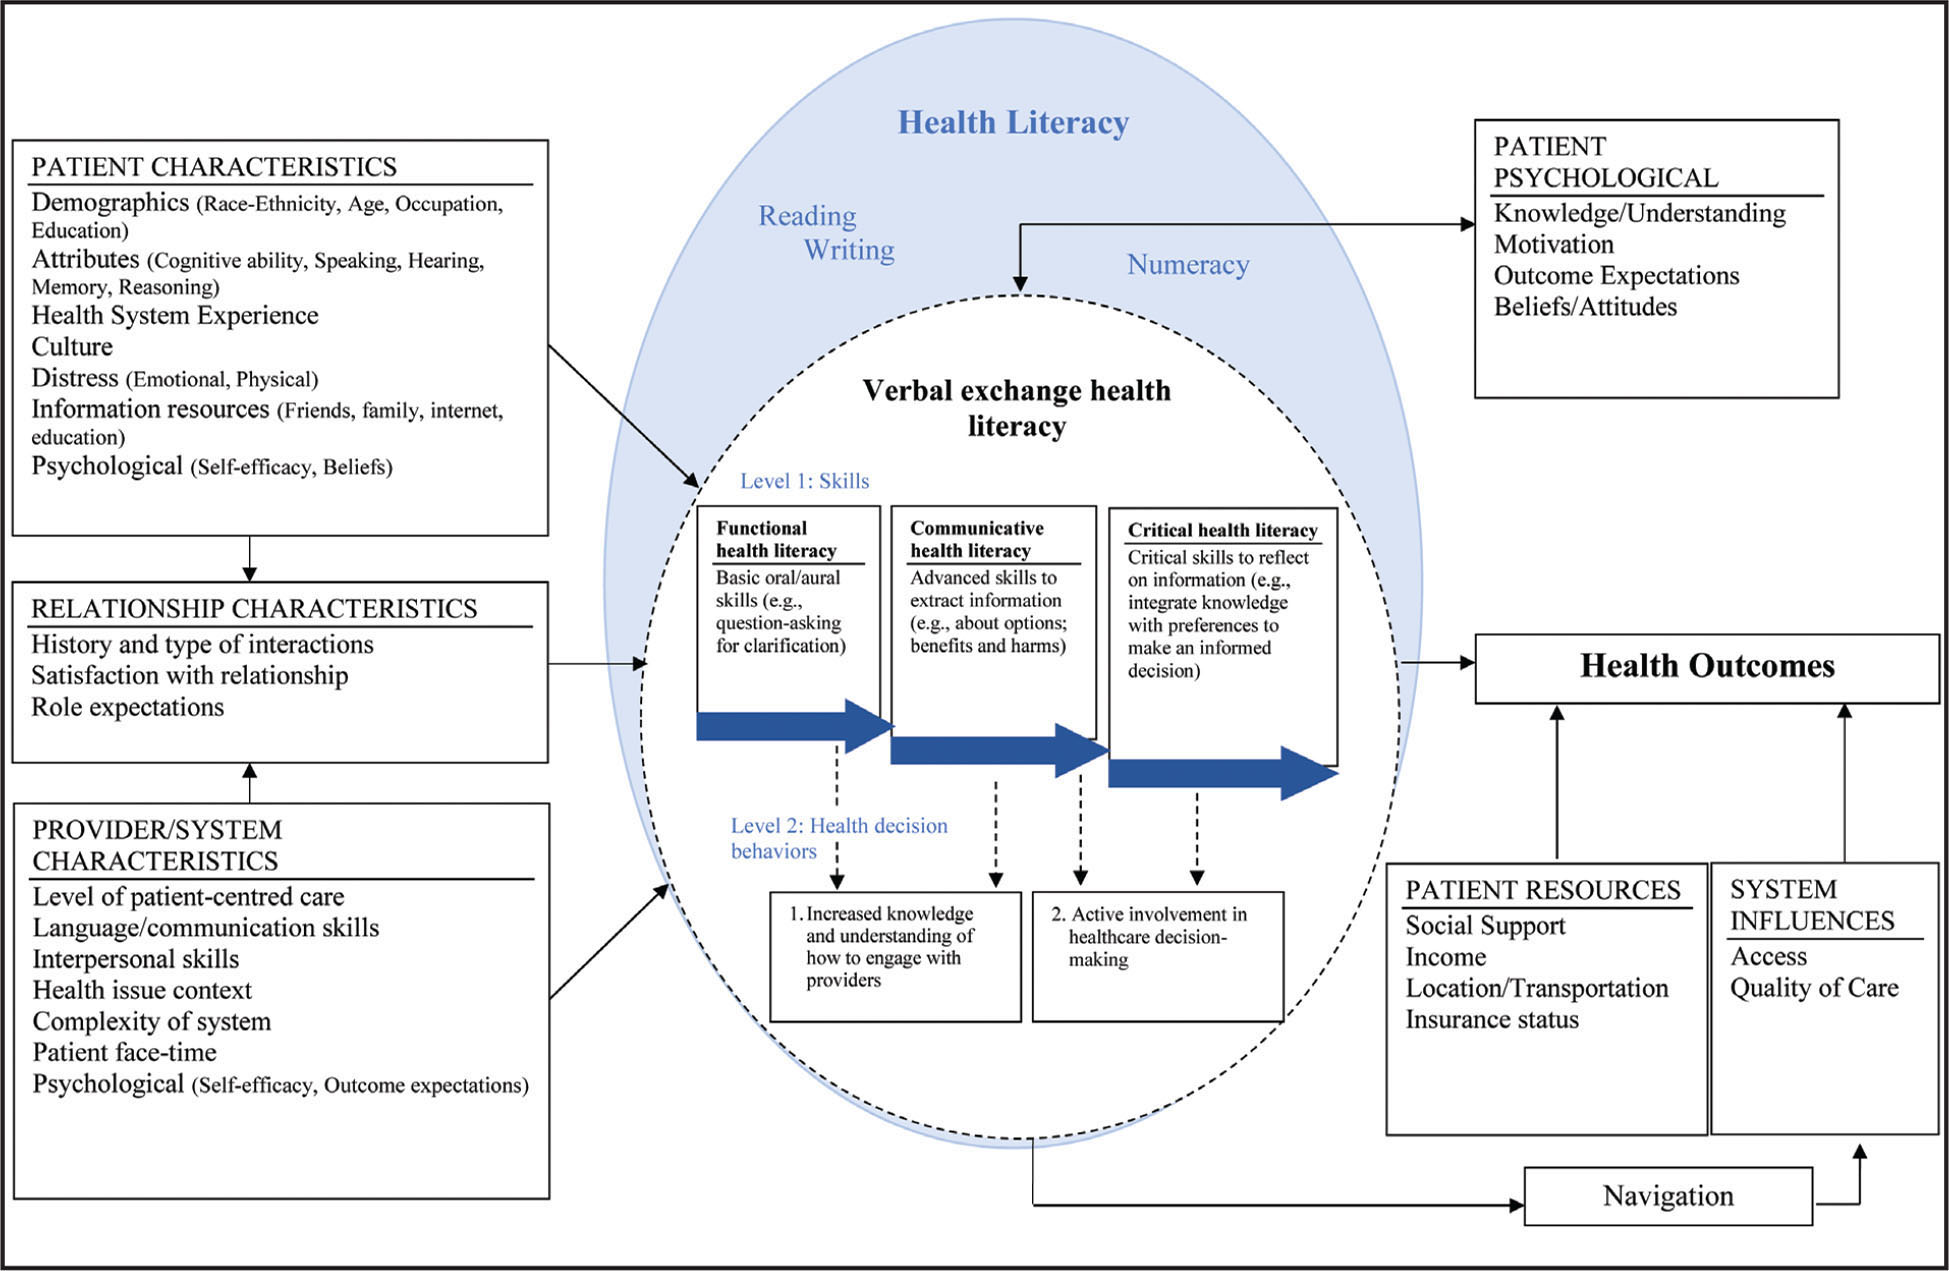 "Adapted Verbal Exchange Health Literacy model. Adapted from ""A conceptual model of verbal exchange health literacy,"" by K. F. Harrington and M. A. Valerio, 2014, Patient Education and Counseling, 94, pp. 403–410."